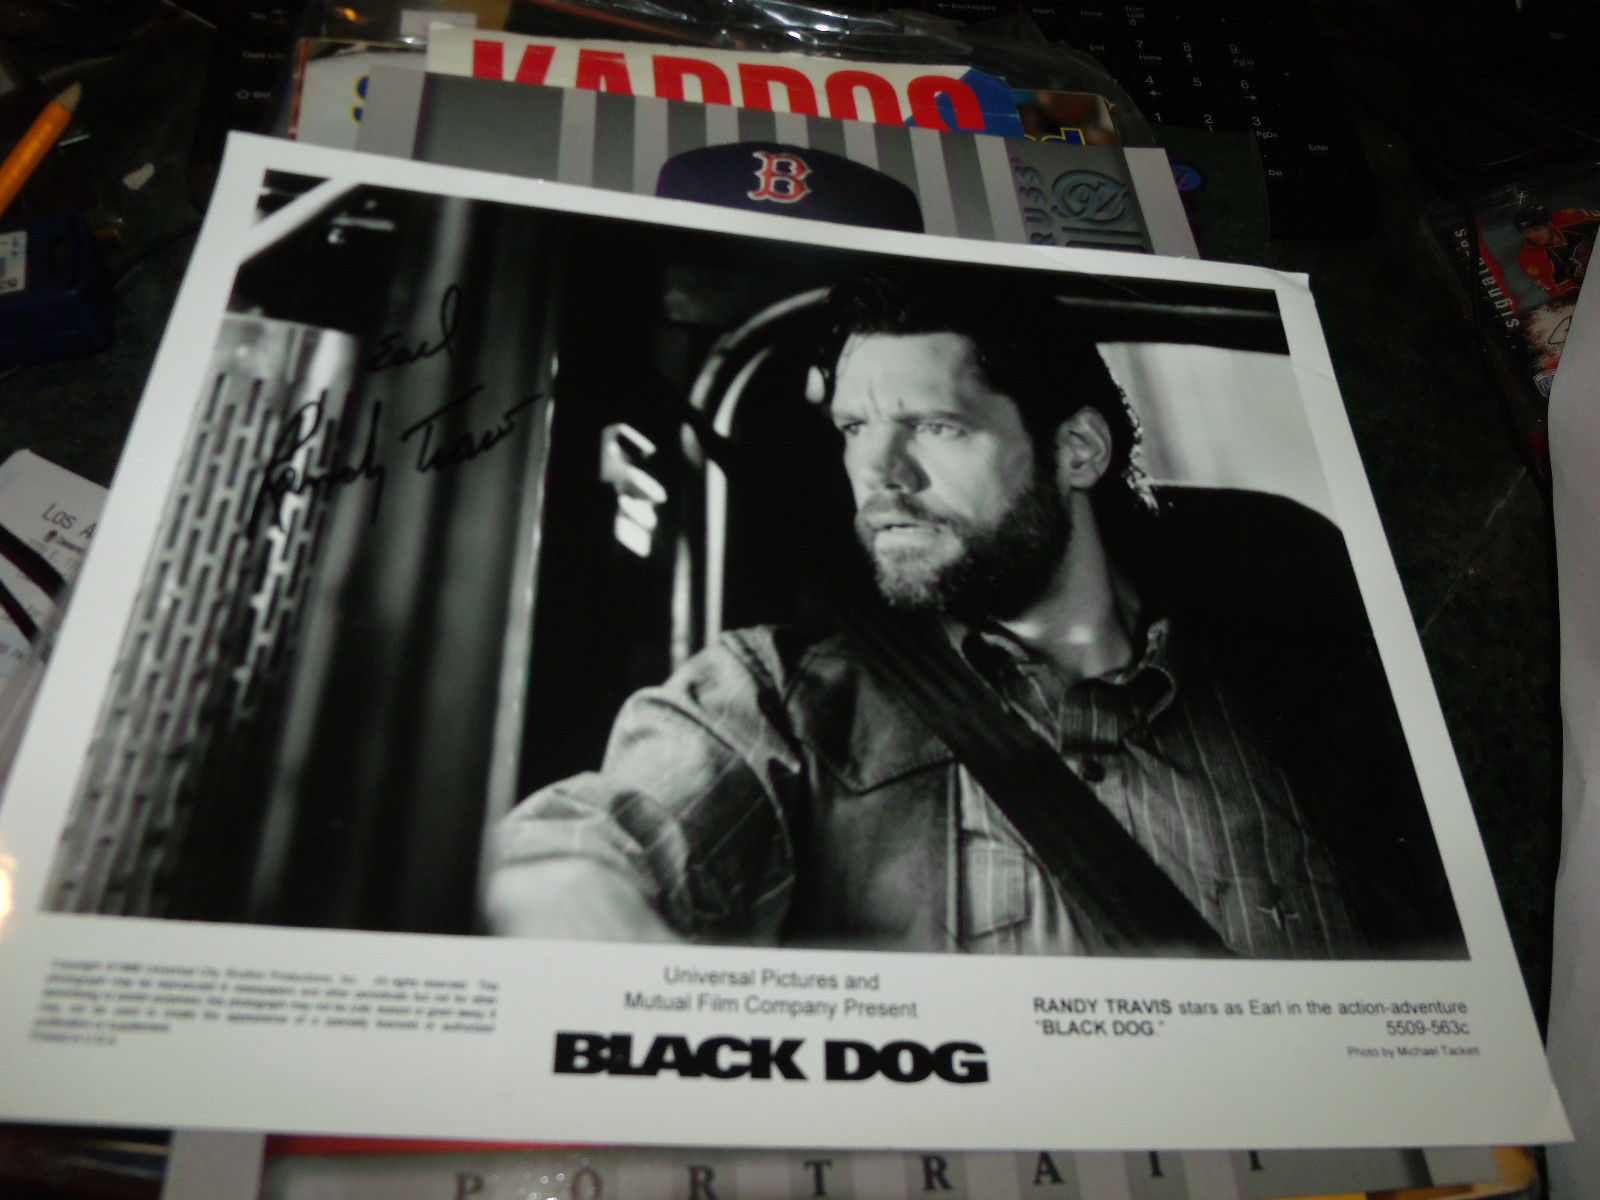 RANDY TRAVIS AS EARL SIGNED BLACK DOG 8X10 MOVIE PROMO PHOTO